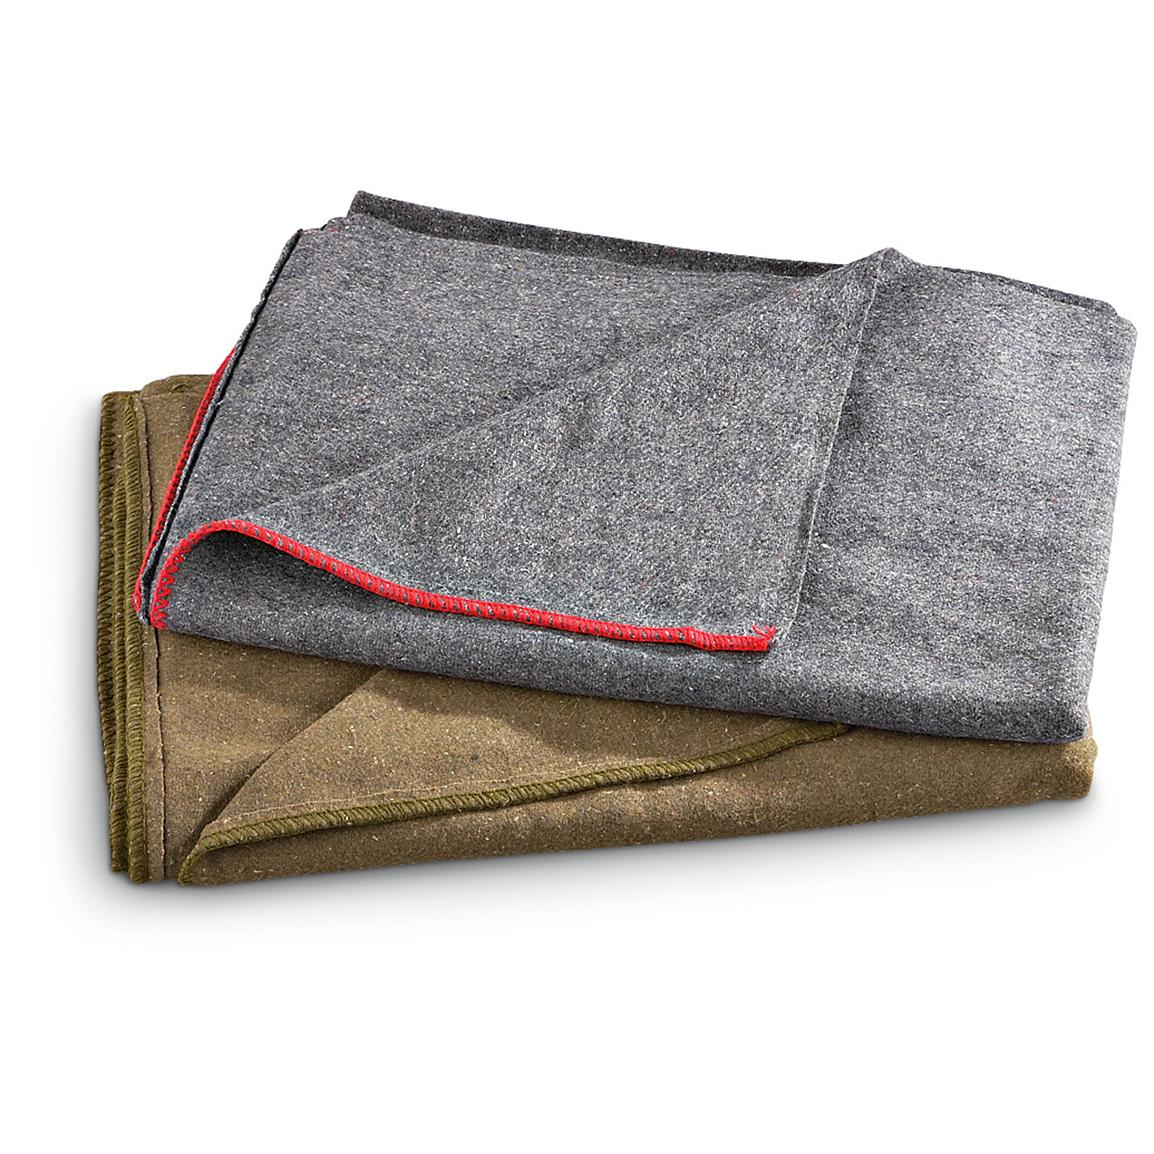 Camp Blankets 2 Fox Tactical Camp Blankets 227285 Army Blankets At